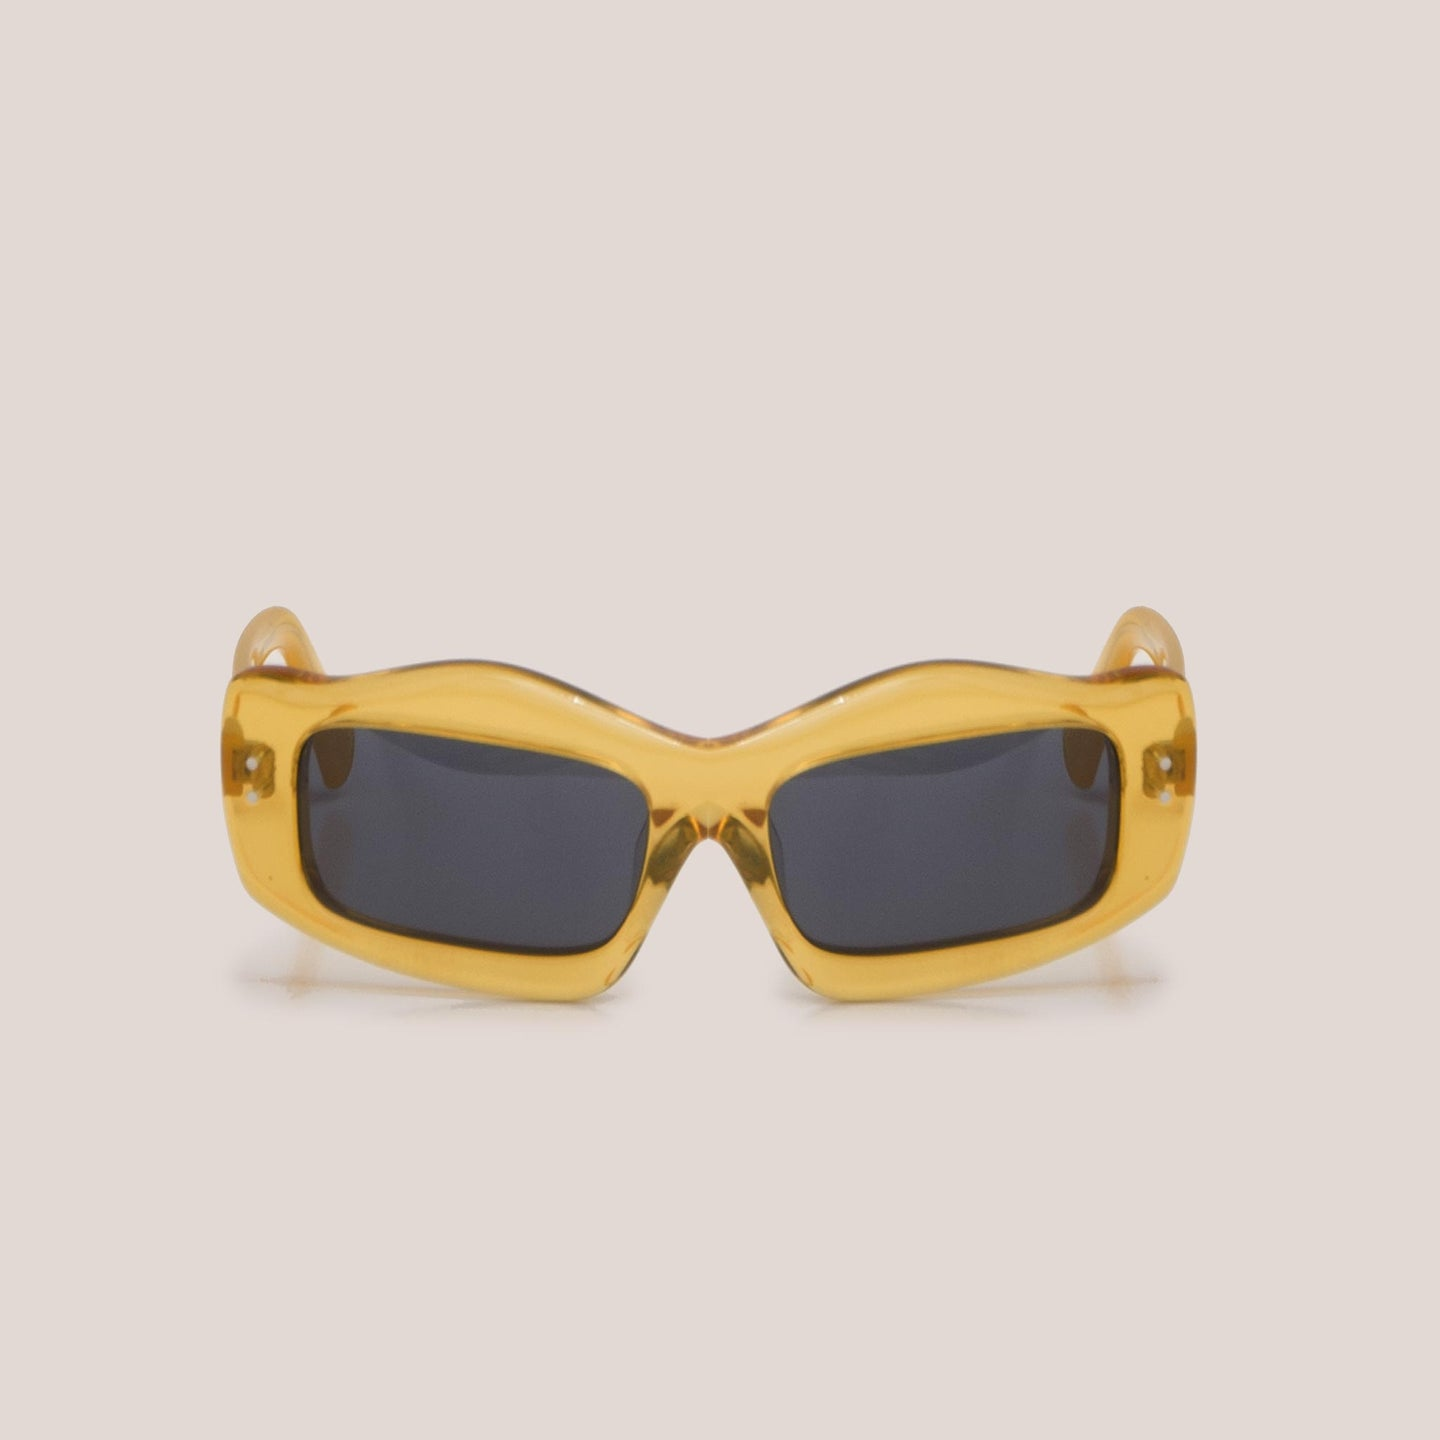 Braindead - Kurata Sunglasses - Multi Amber, front view, available at LCD.